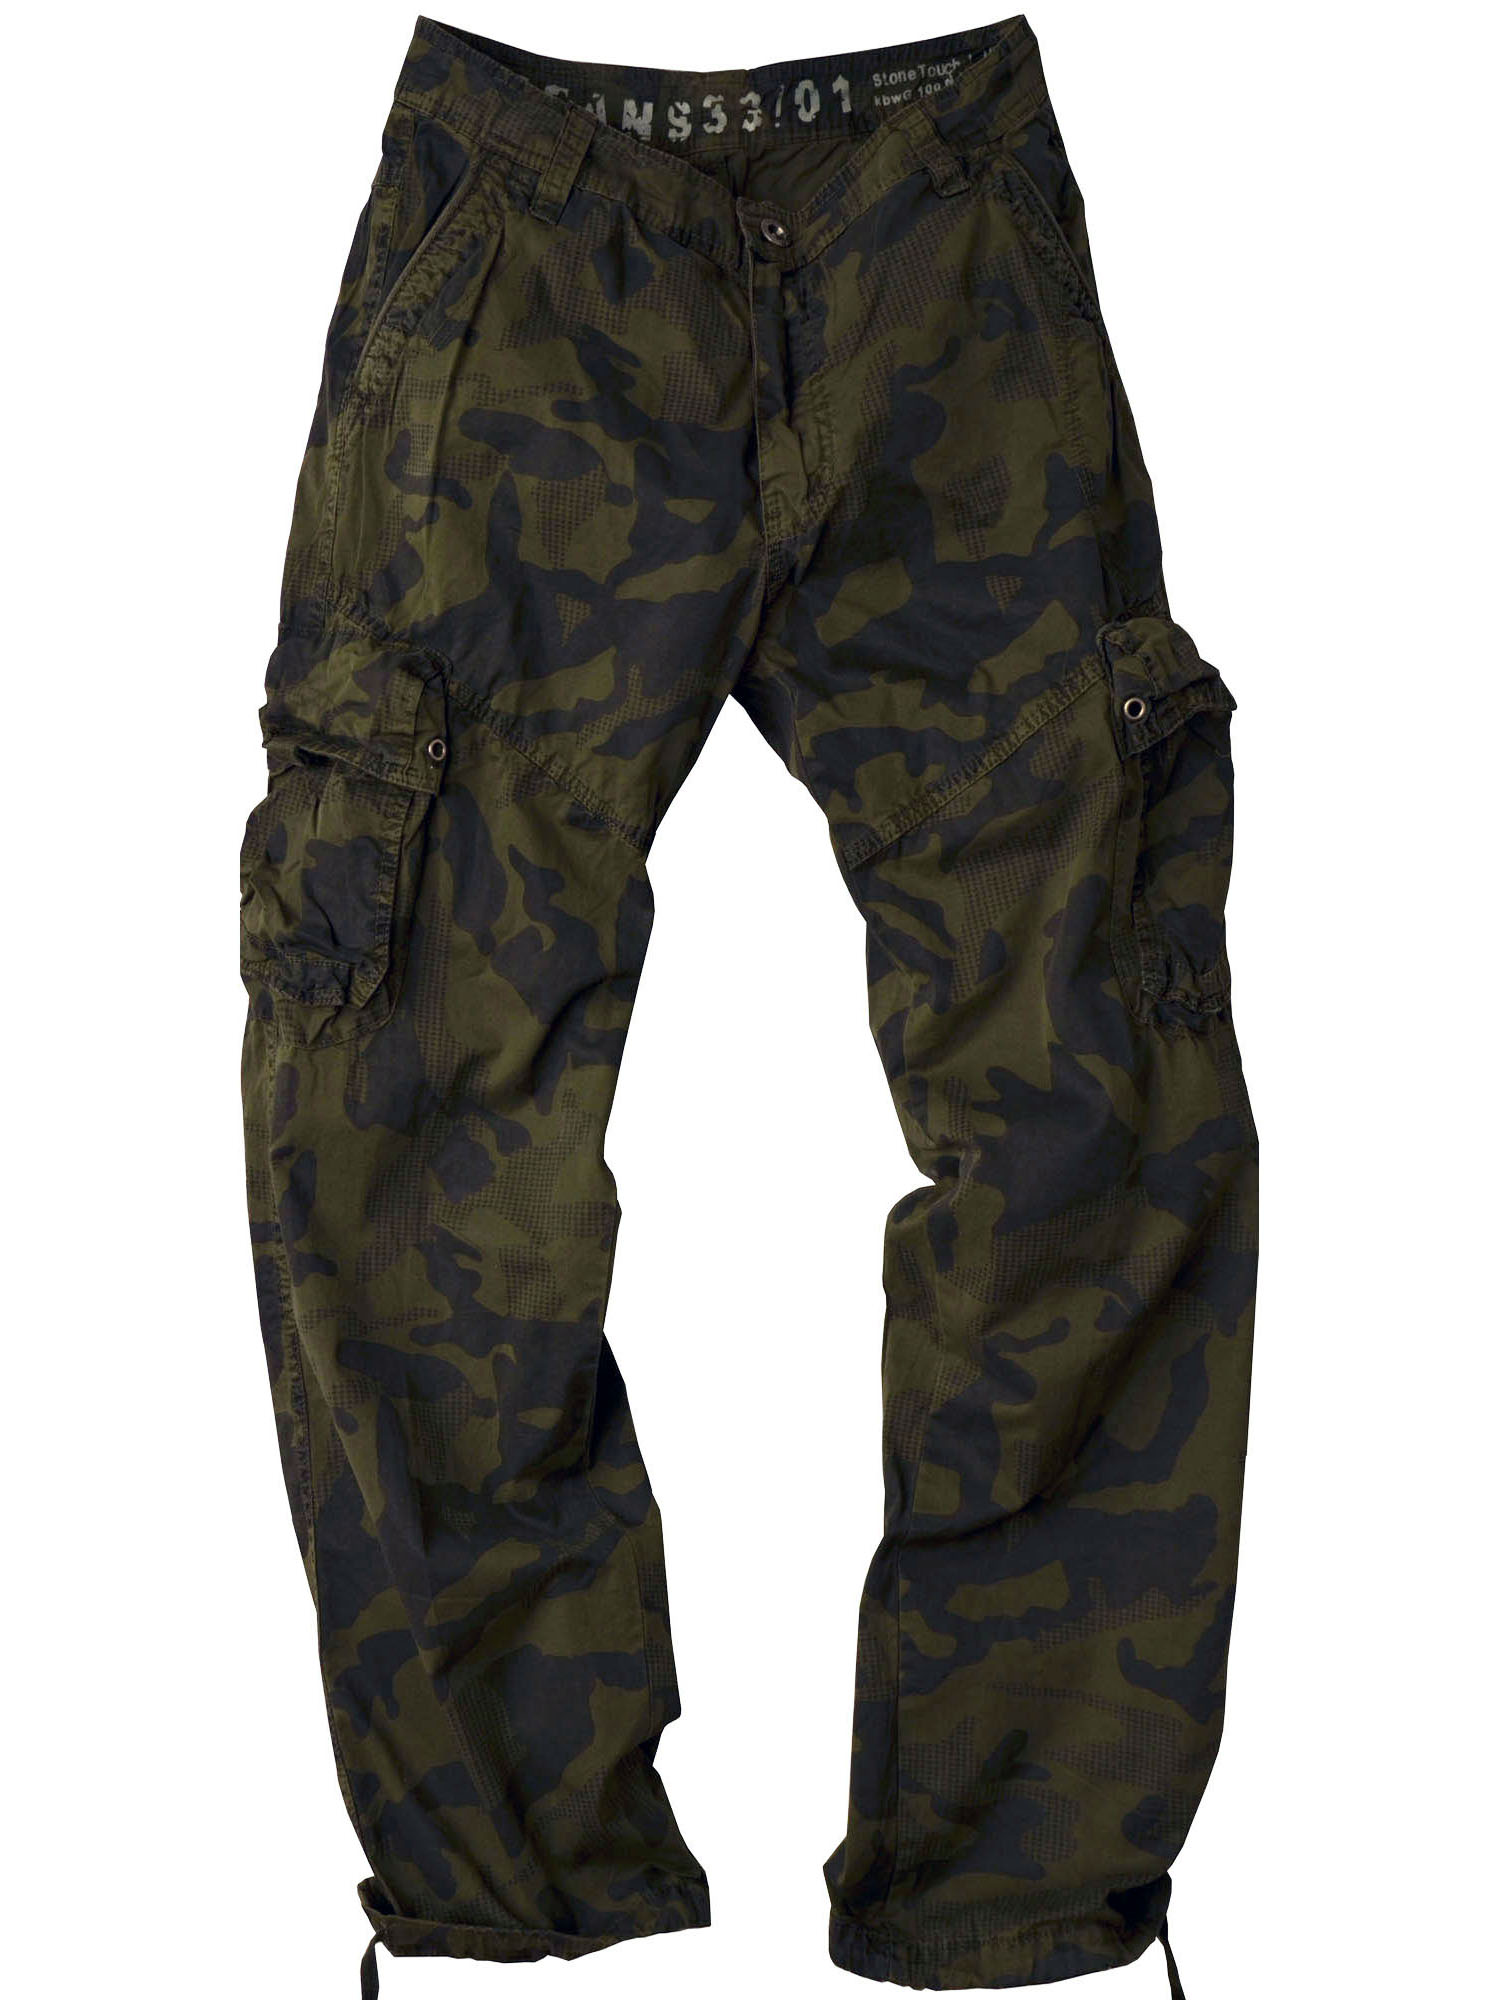 StoneTouch Men's Military-Style Cargo Camo Olive Color Pants 28C1-42x32